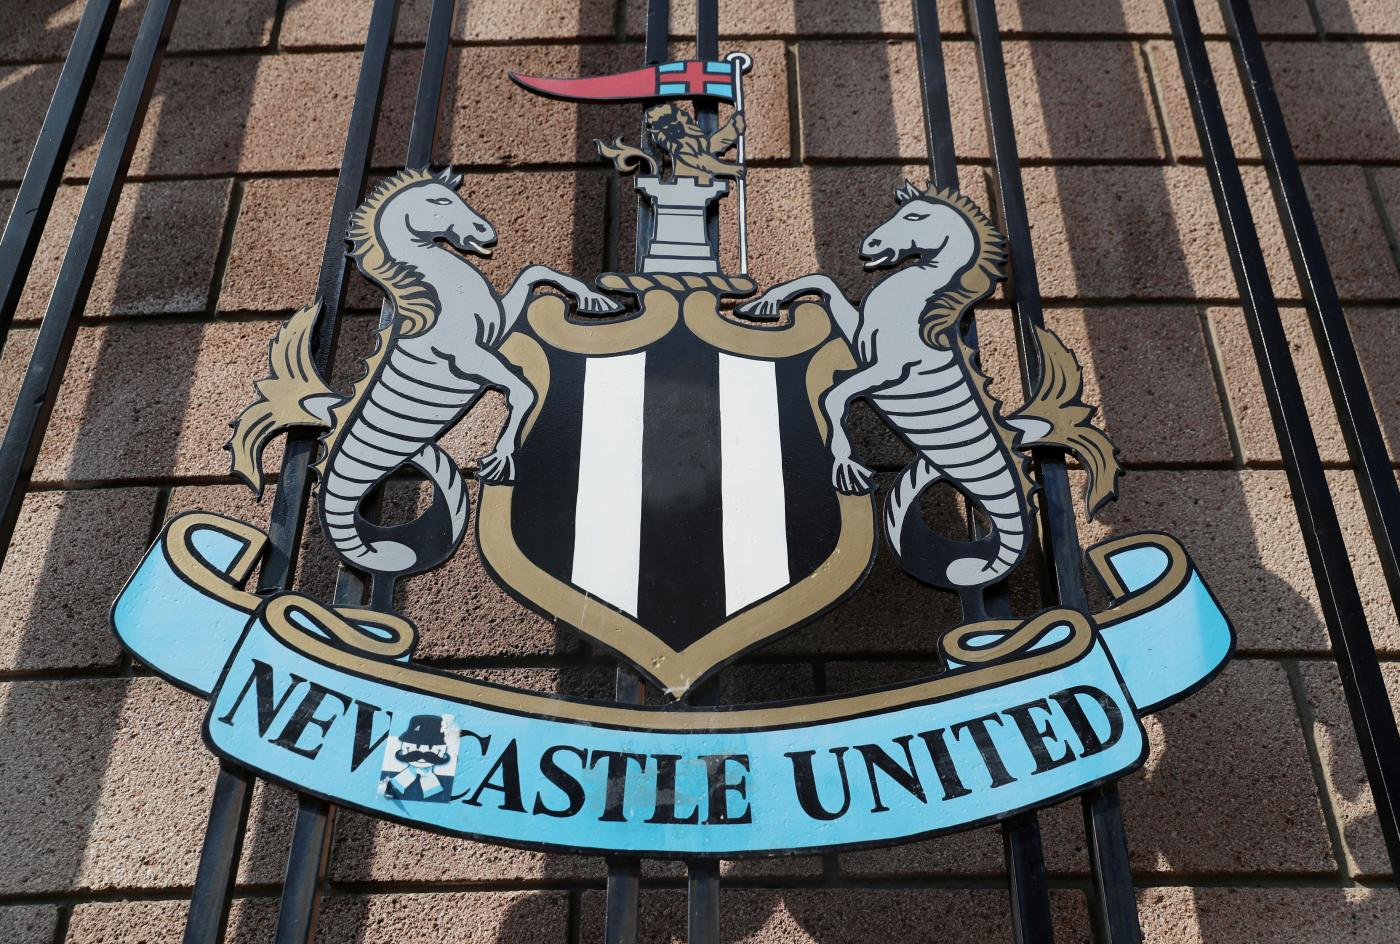 Newcastle United will play their first match of the 2020/21 season against West Ham on Saturday